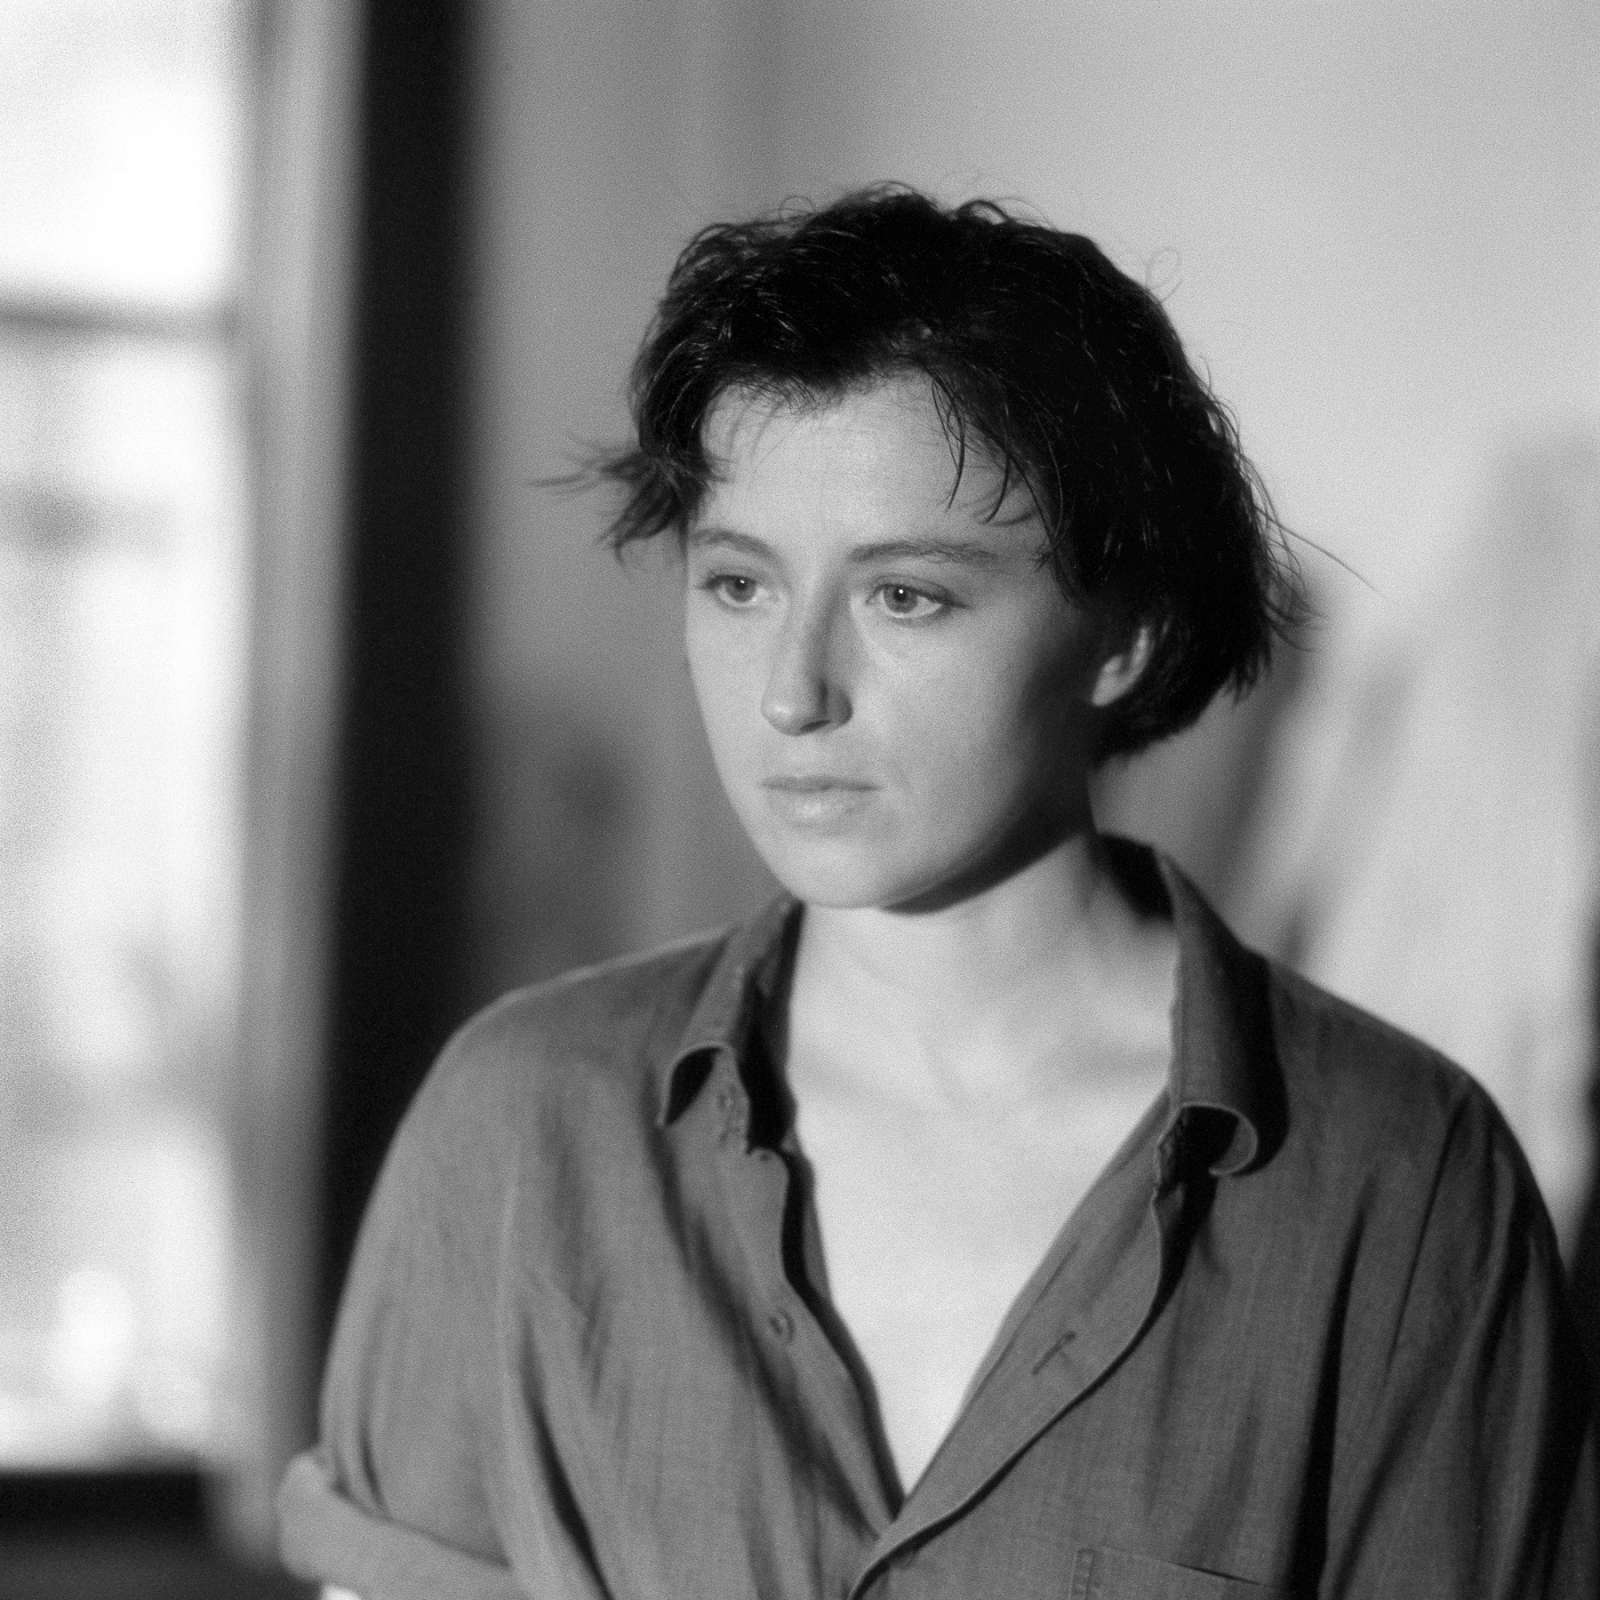 Cindy Sherman, N.Y.C., 1986